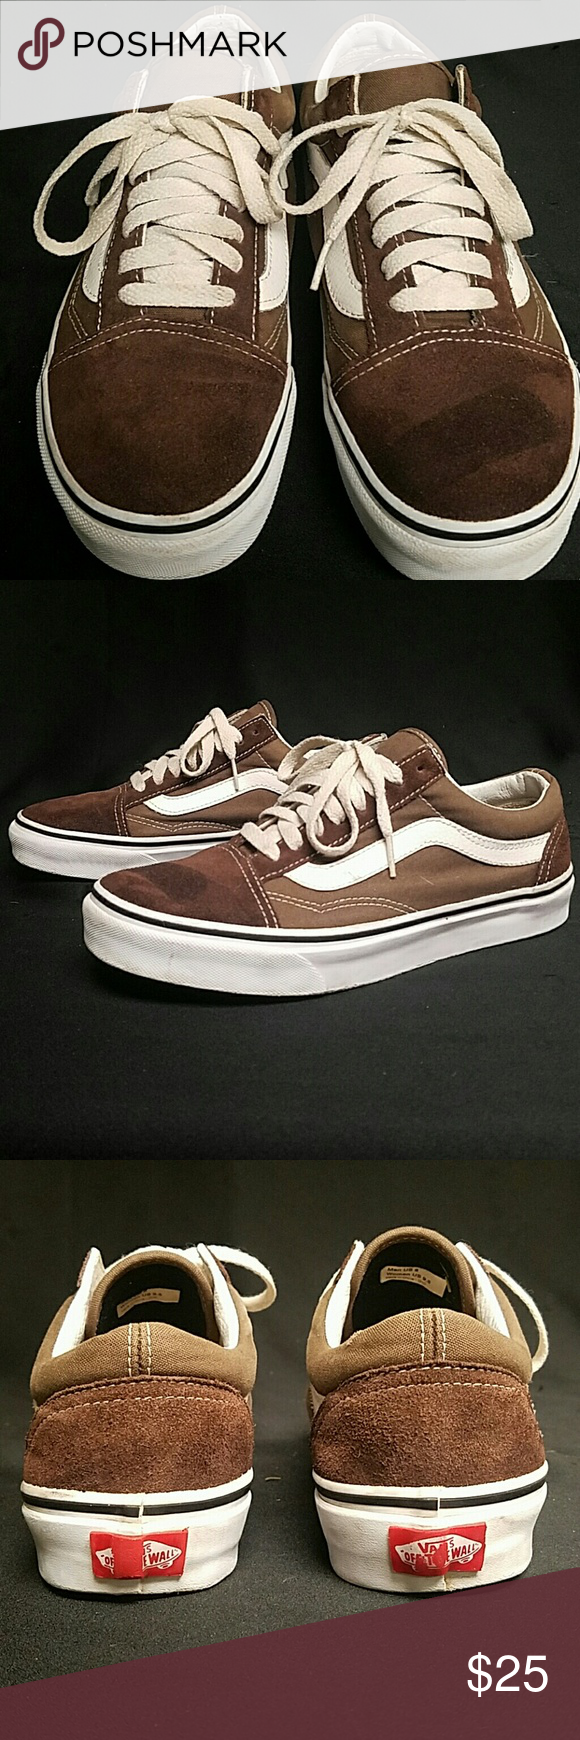 23f046c03ac Vans Old skool Size 8 Men Excellent Condition